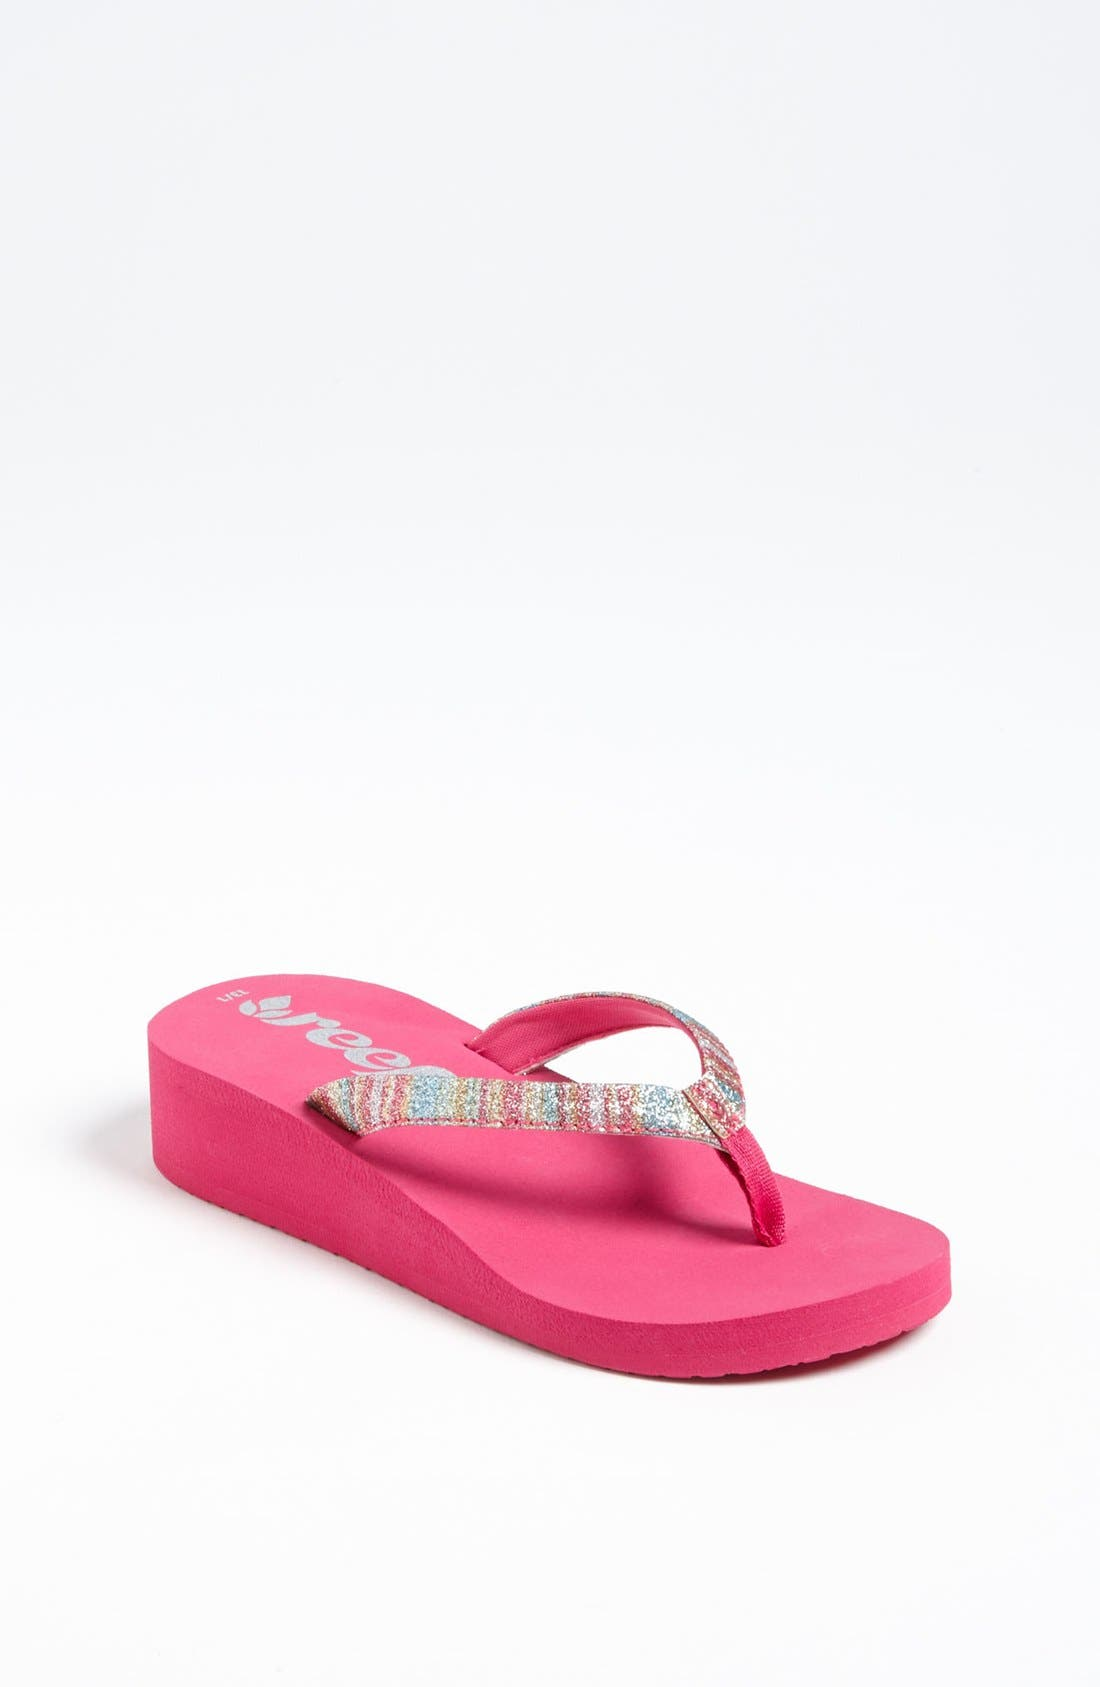 Main Image - REEF LITTLE KRYSTAL STAR LUXE SANDAL